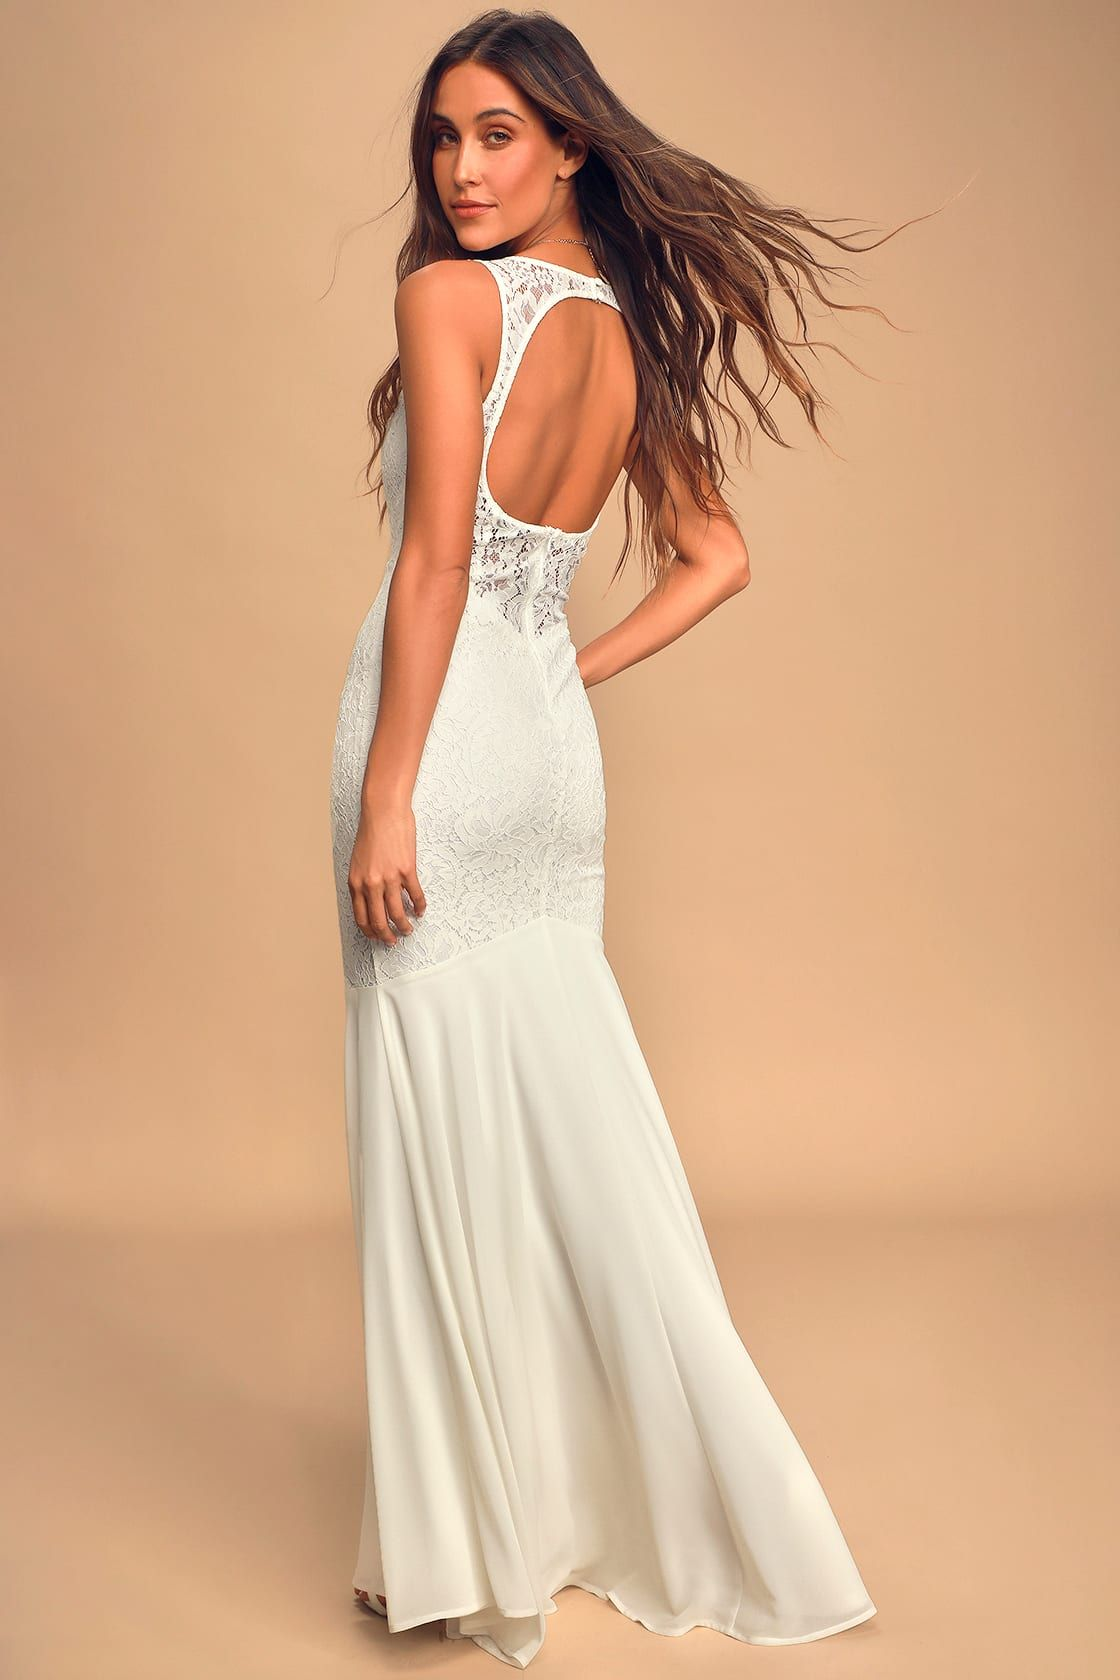 Take My Breath Away White Lace Backless Mermaid Maxi Dress In 2020 Backless Lace Dress Bridal Dresses White Lace Gown